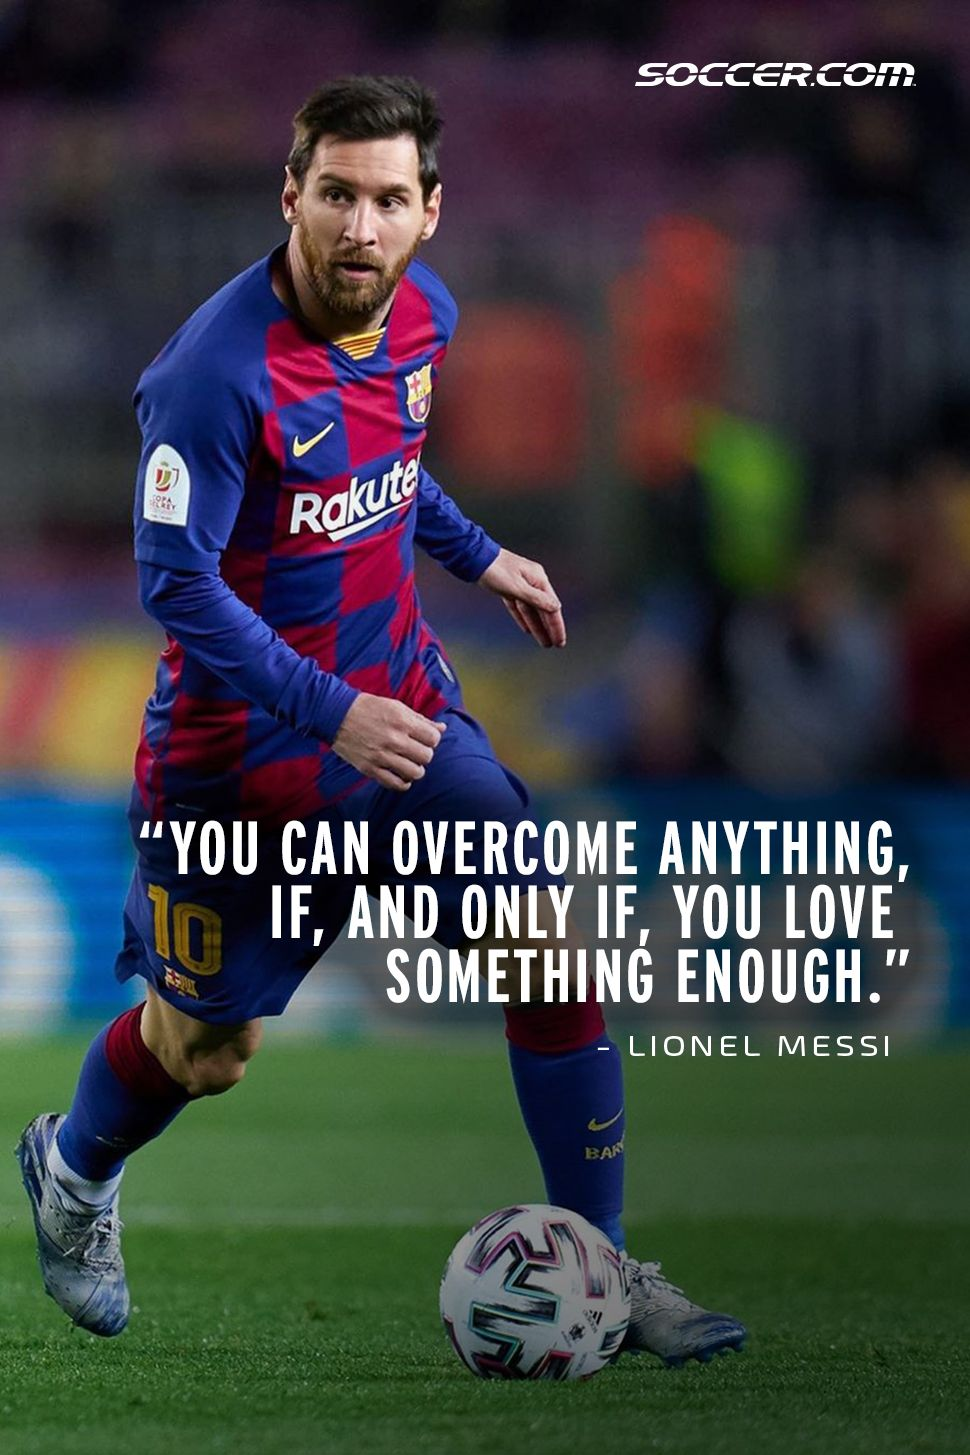 Best inspirational soccer quotes in 2020